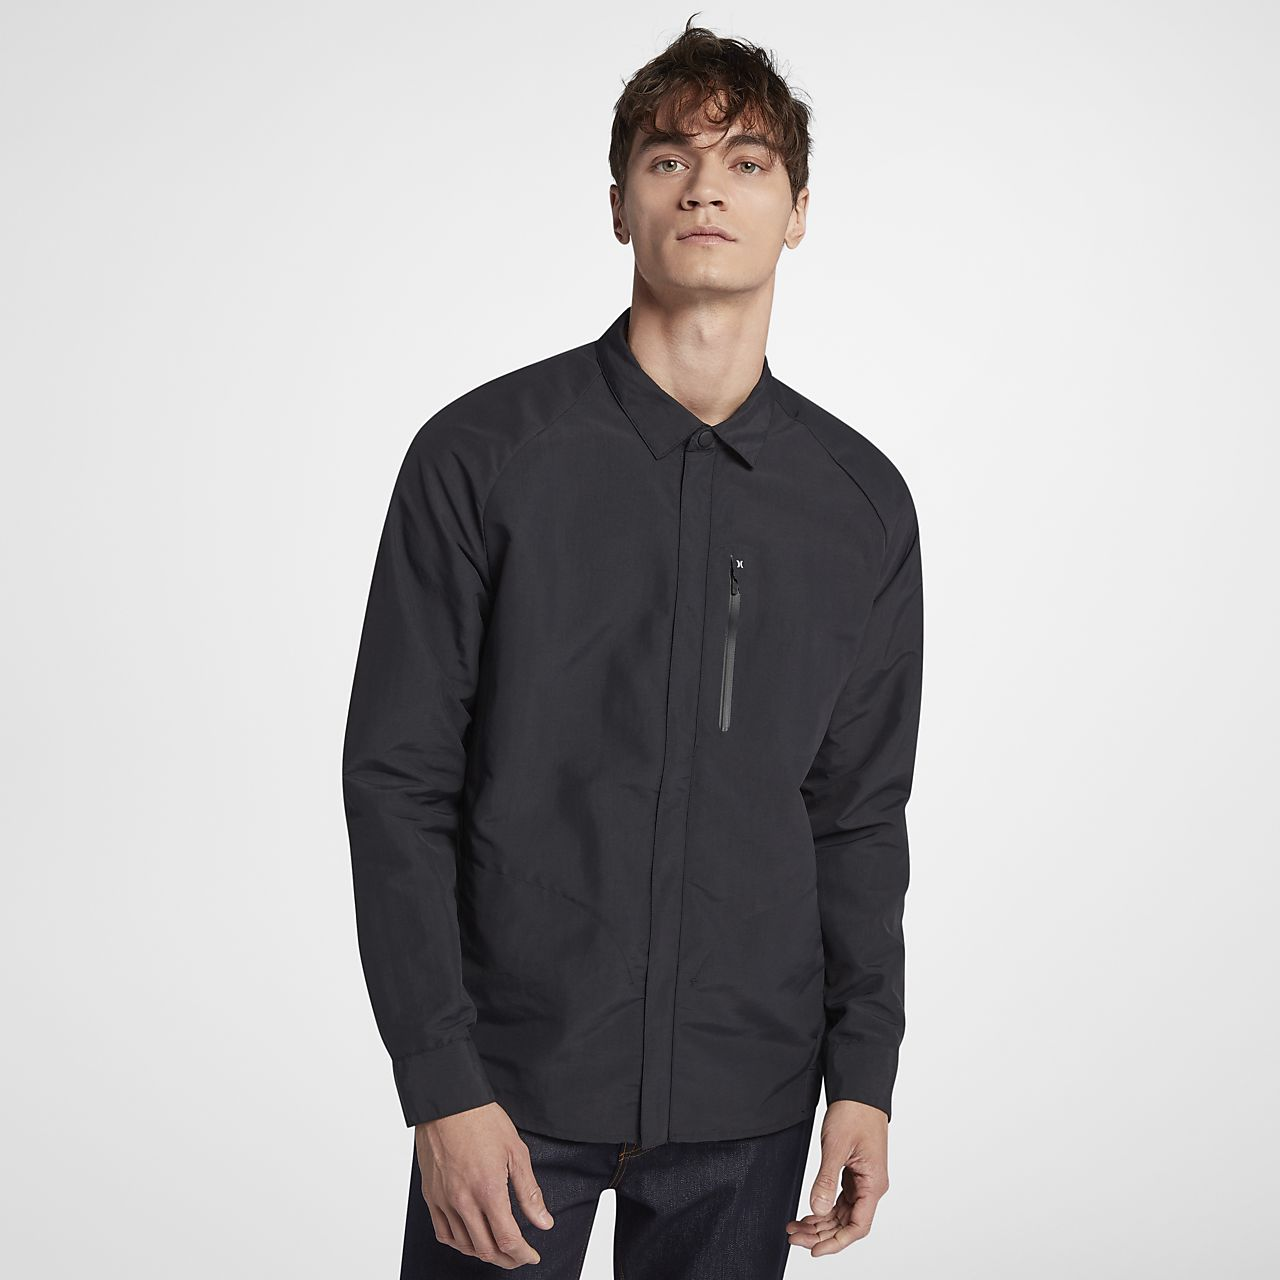 Hurley Forge Men's Jacket